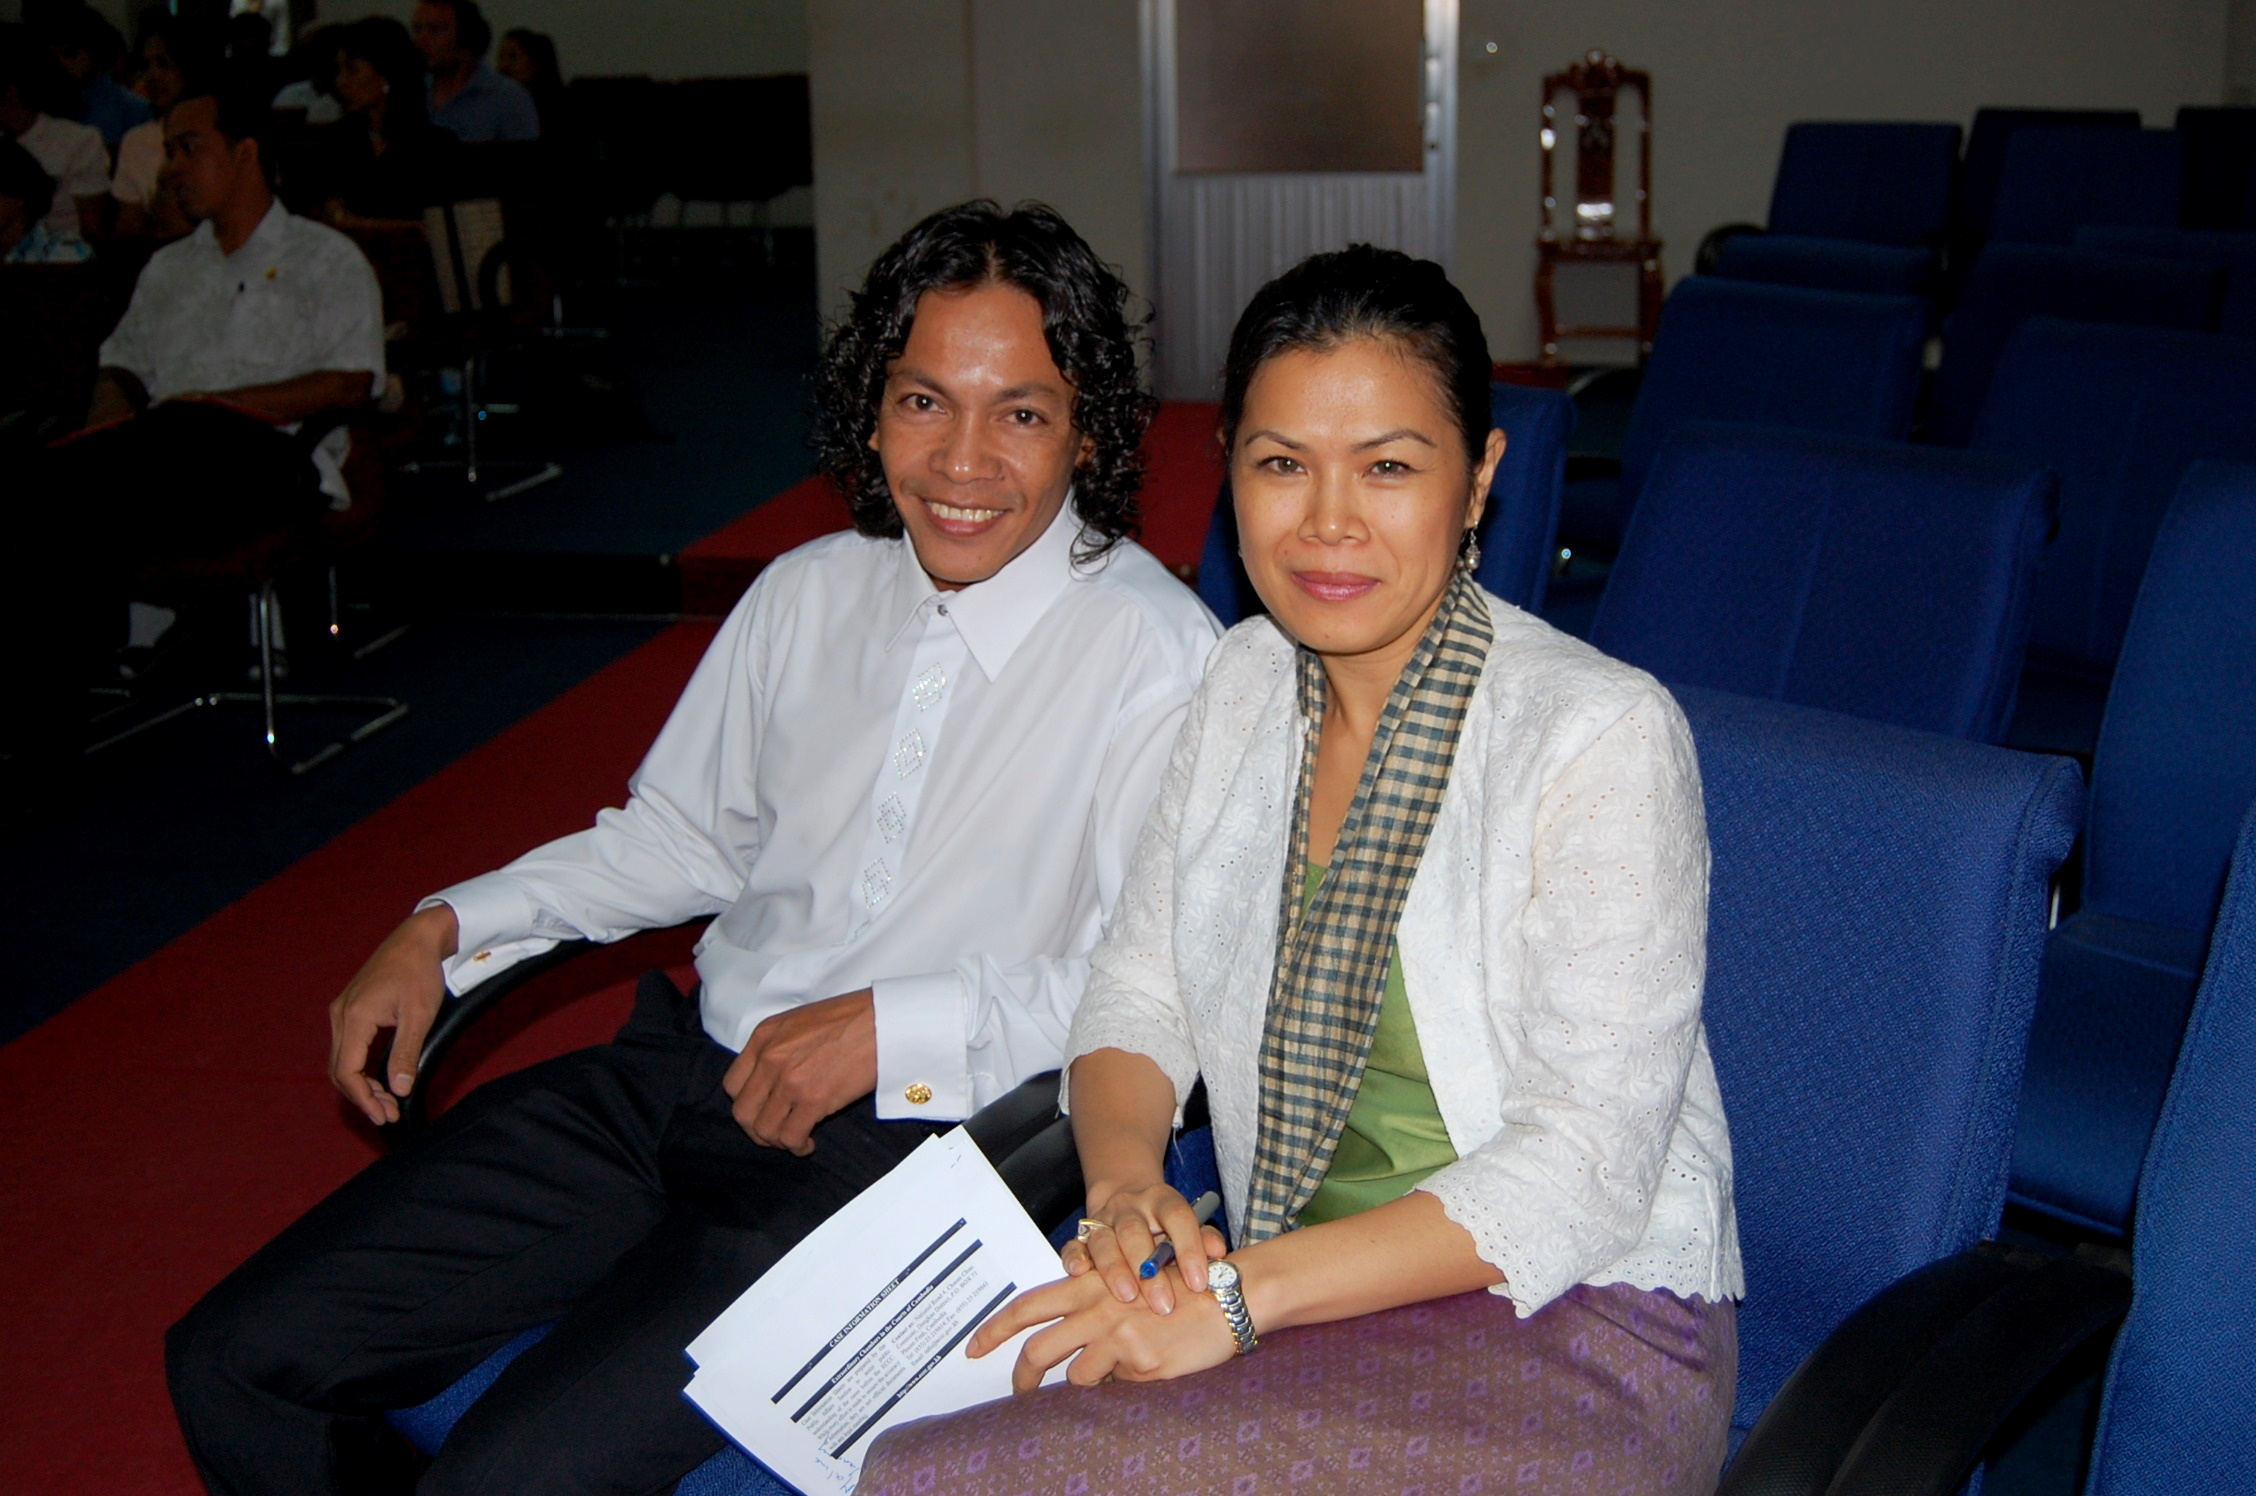 Tenor Khuon Sethisak and CJR Theary Seng, 23 July 2010